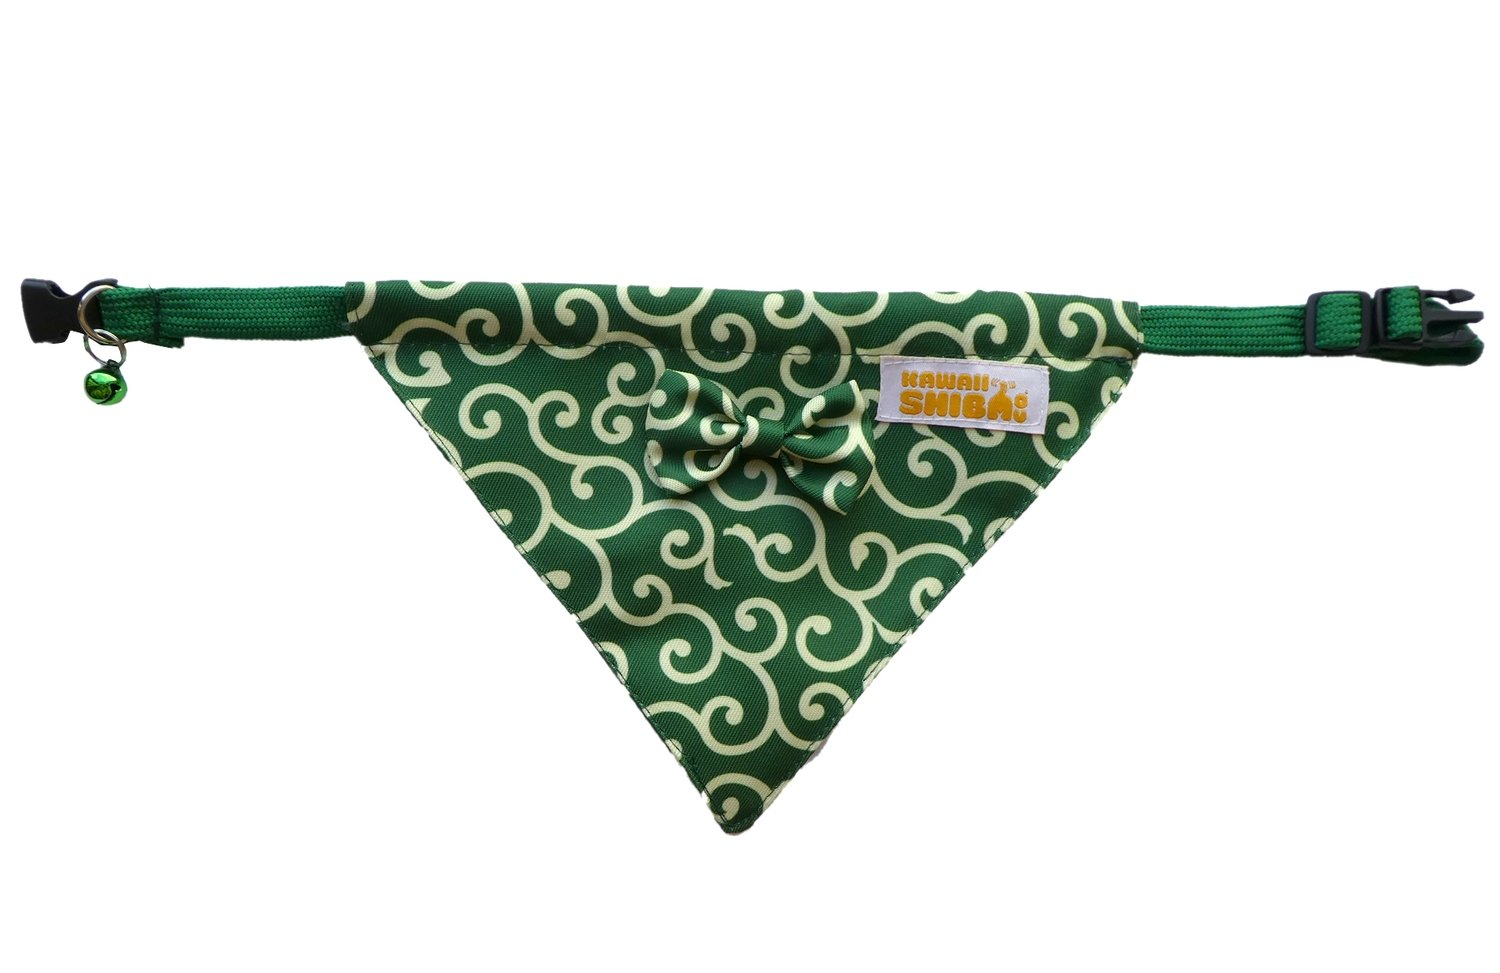 Kawaii Shiba Co. Green Karakusa Japanese Shiba Inu Dog Bandana With Adjustable Collar